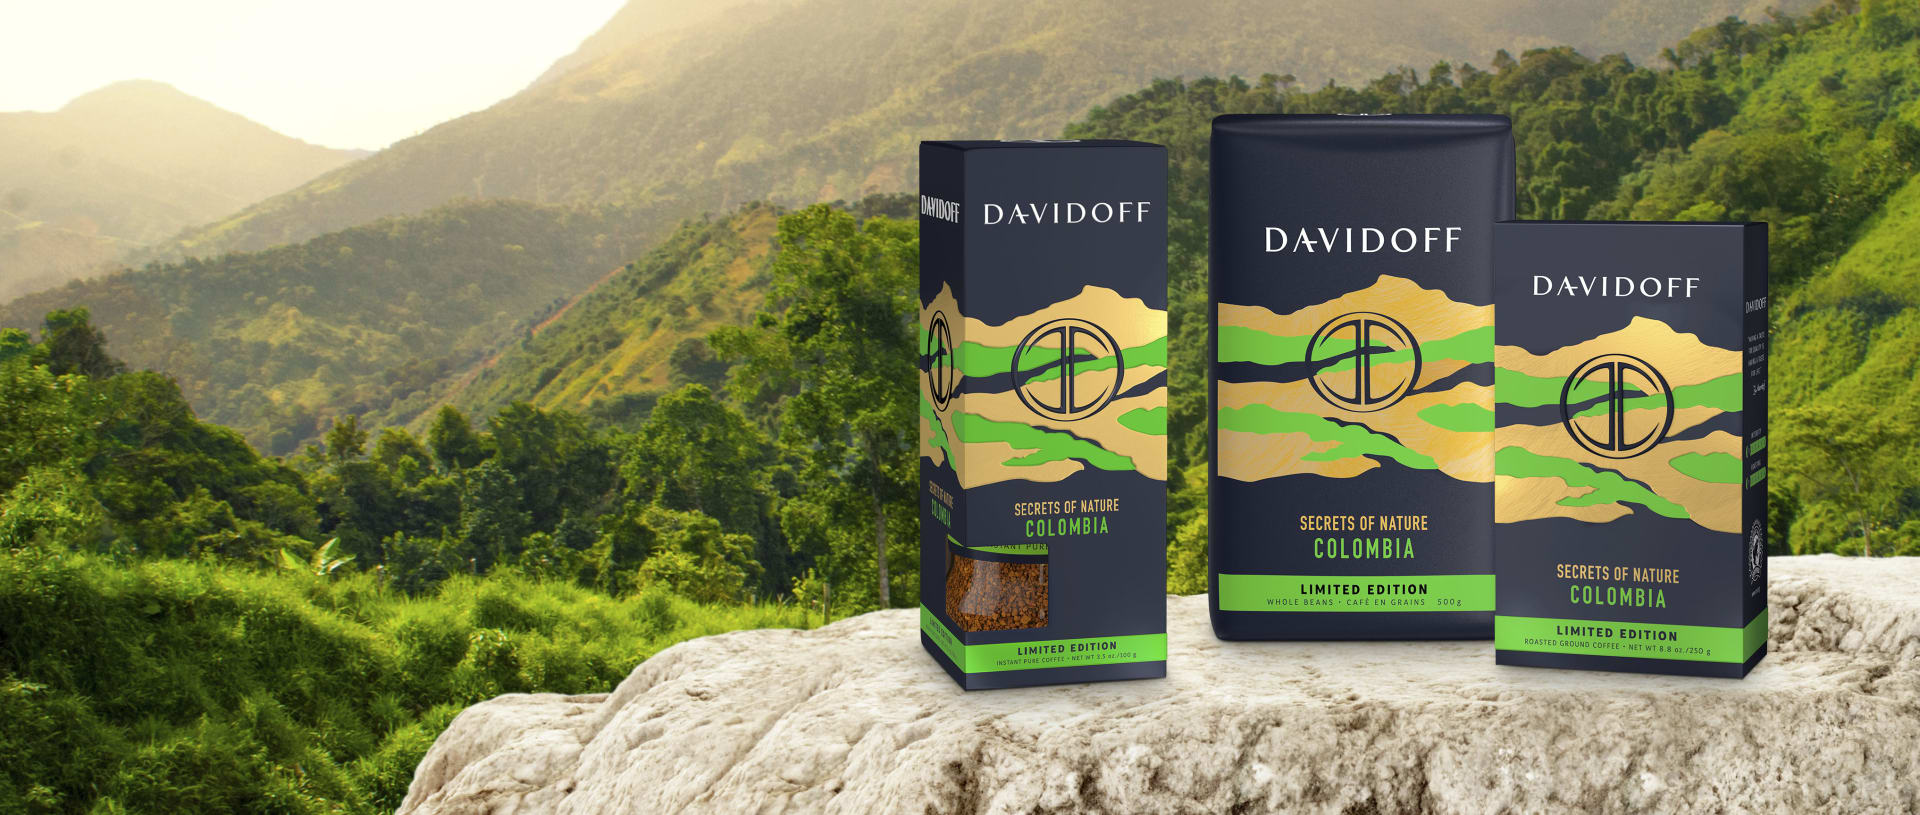 DAVIDOFF coffee - Limjited edition Colombia